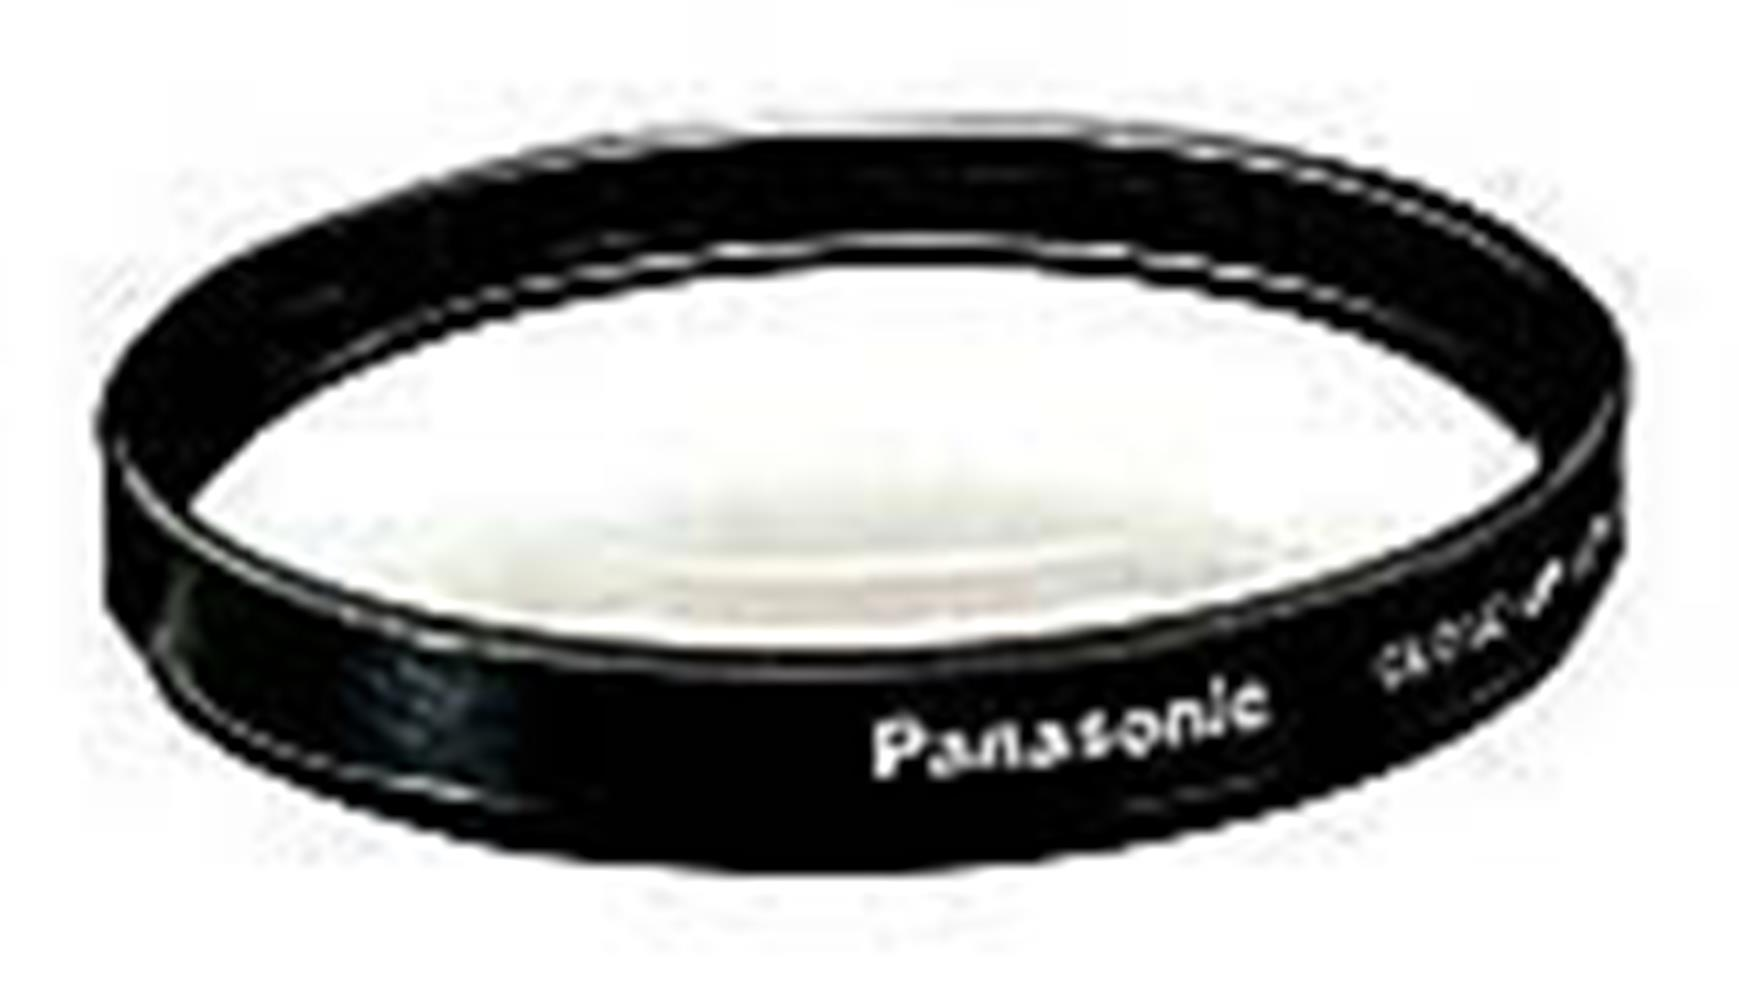 PANASONIC 52MM MC LENS PROTECTOR DMWLMC